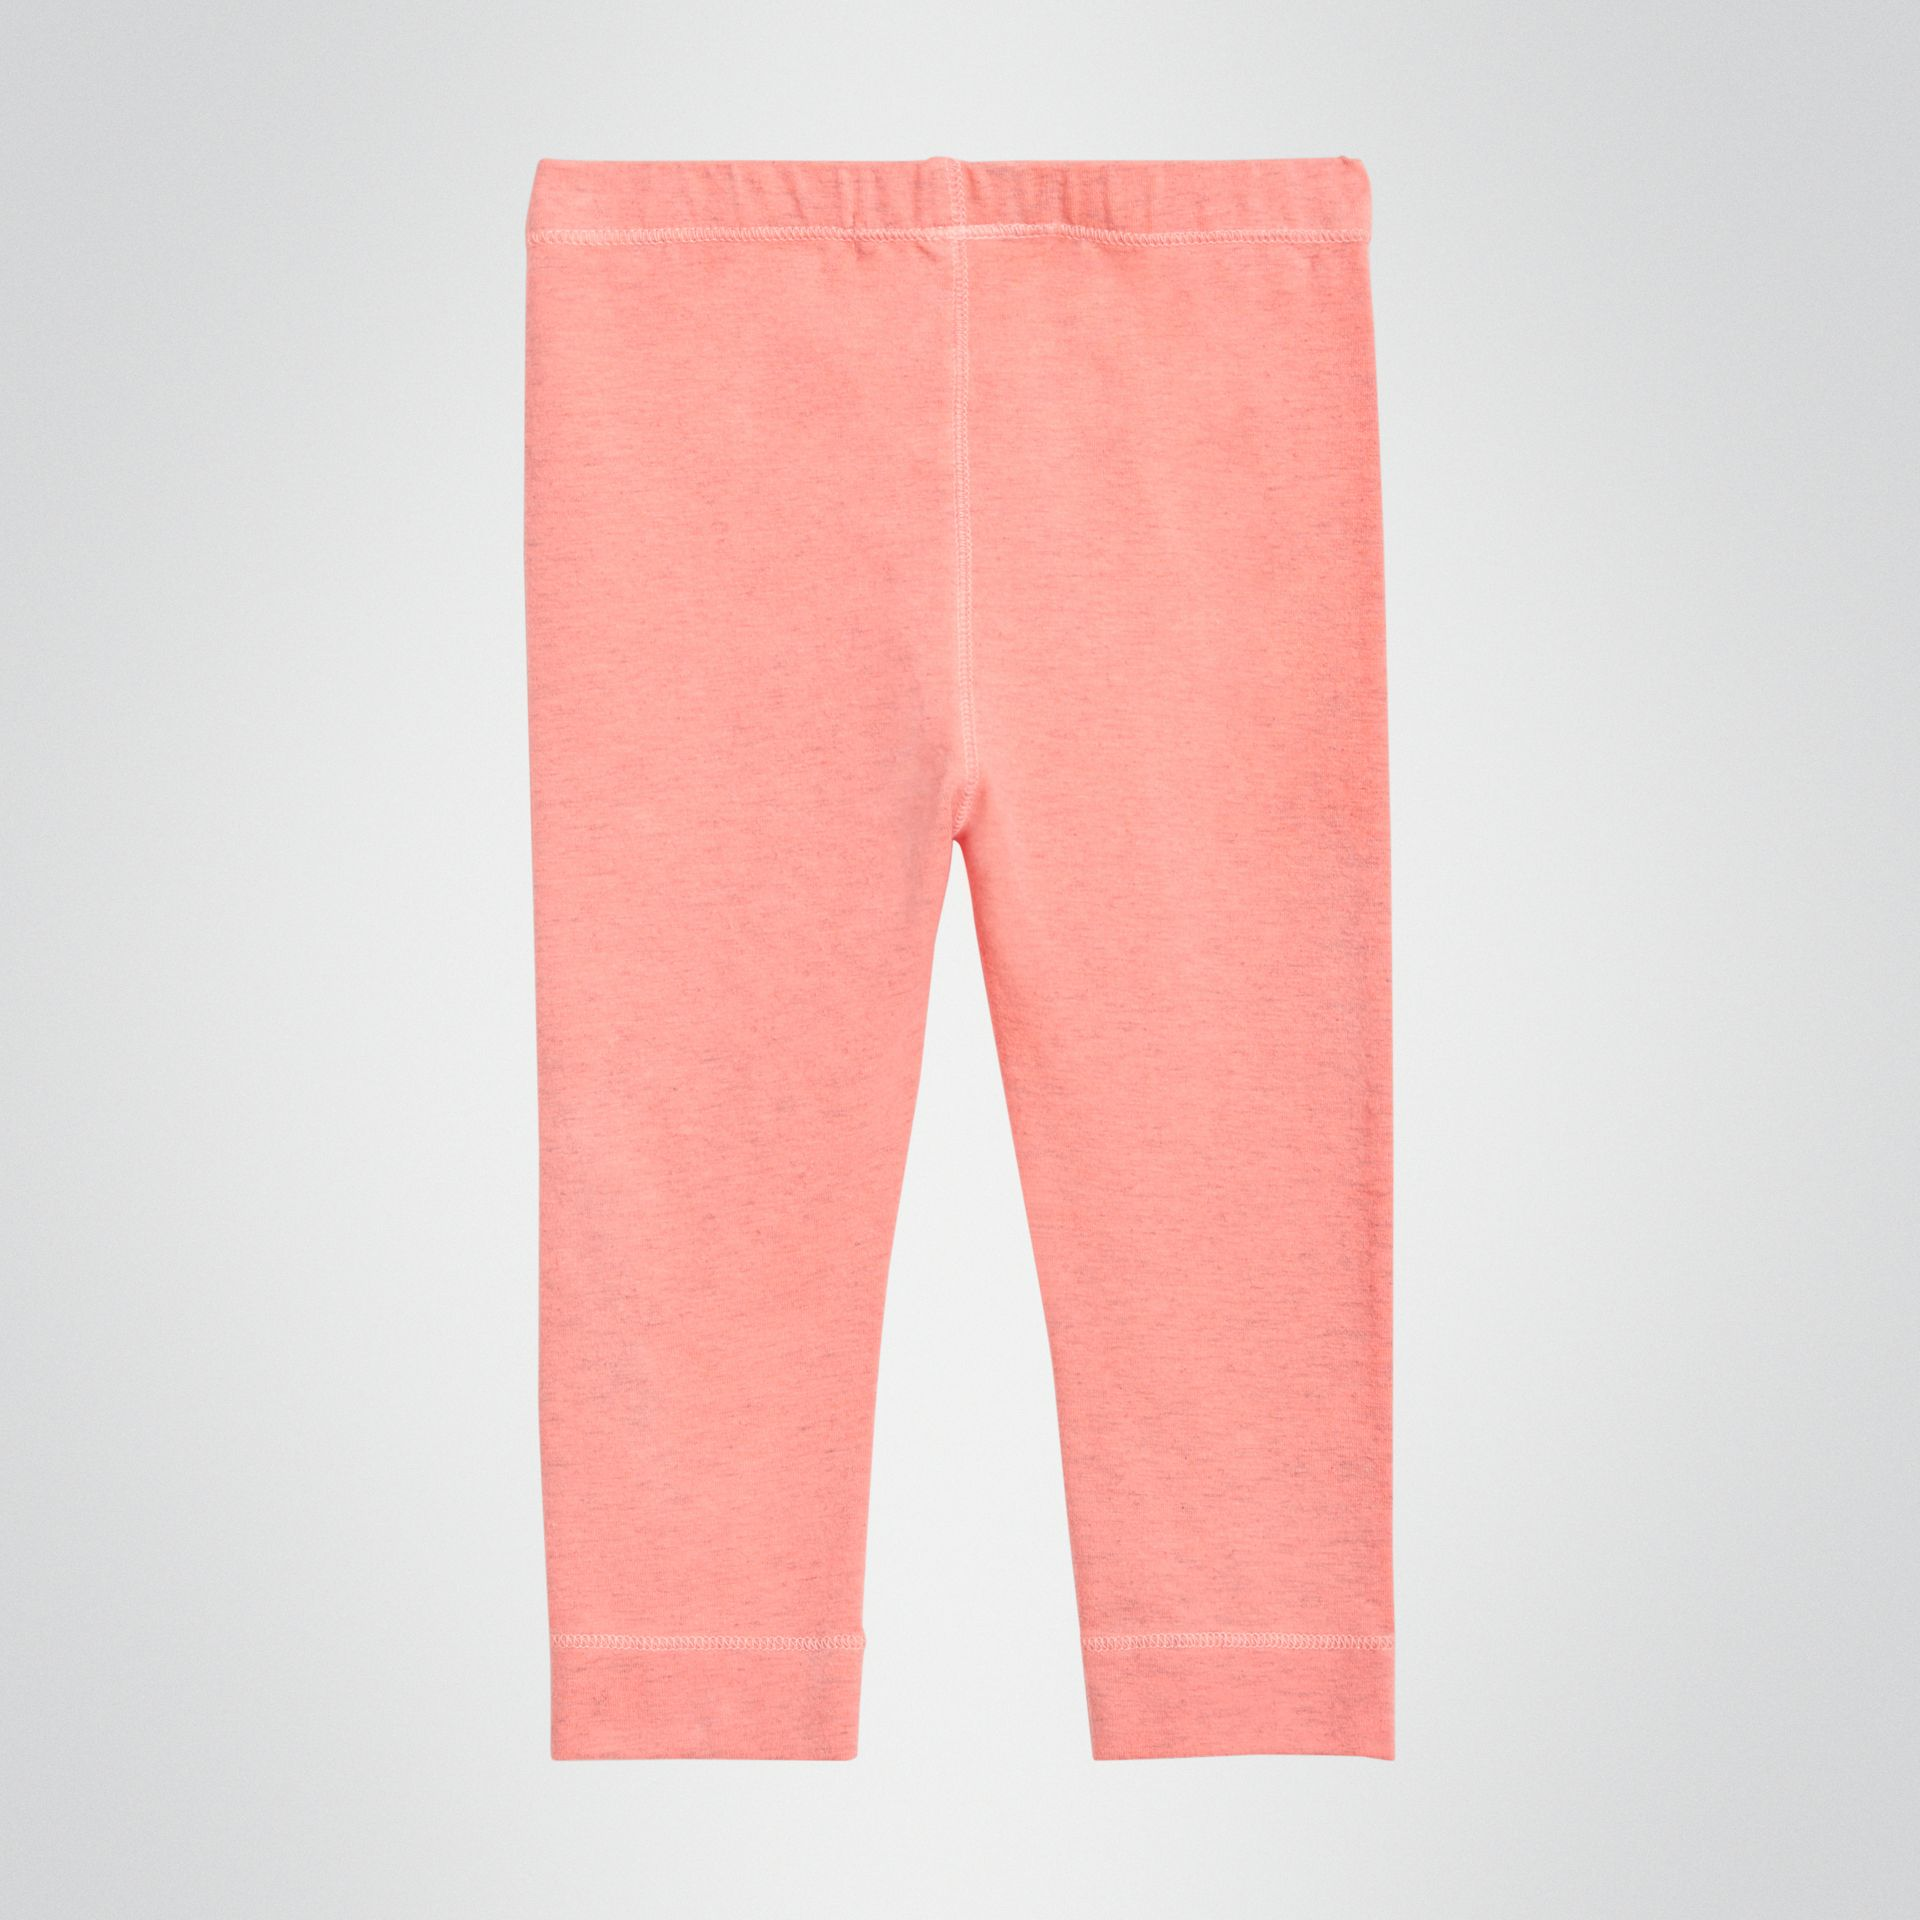 Logo Print Stretch Cotton Leggings in Pale Pink - Children | Burberry United Kingdom - gallery image 3